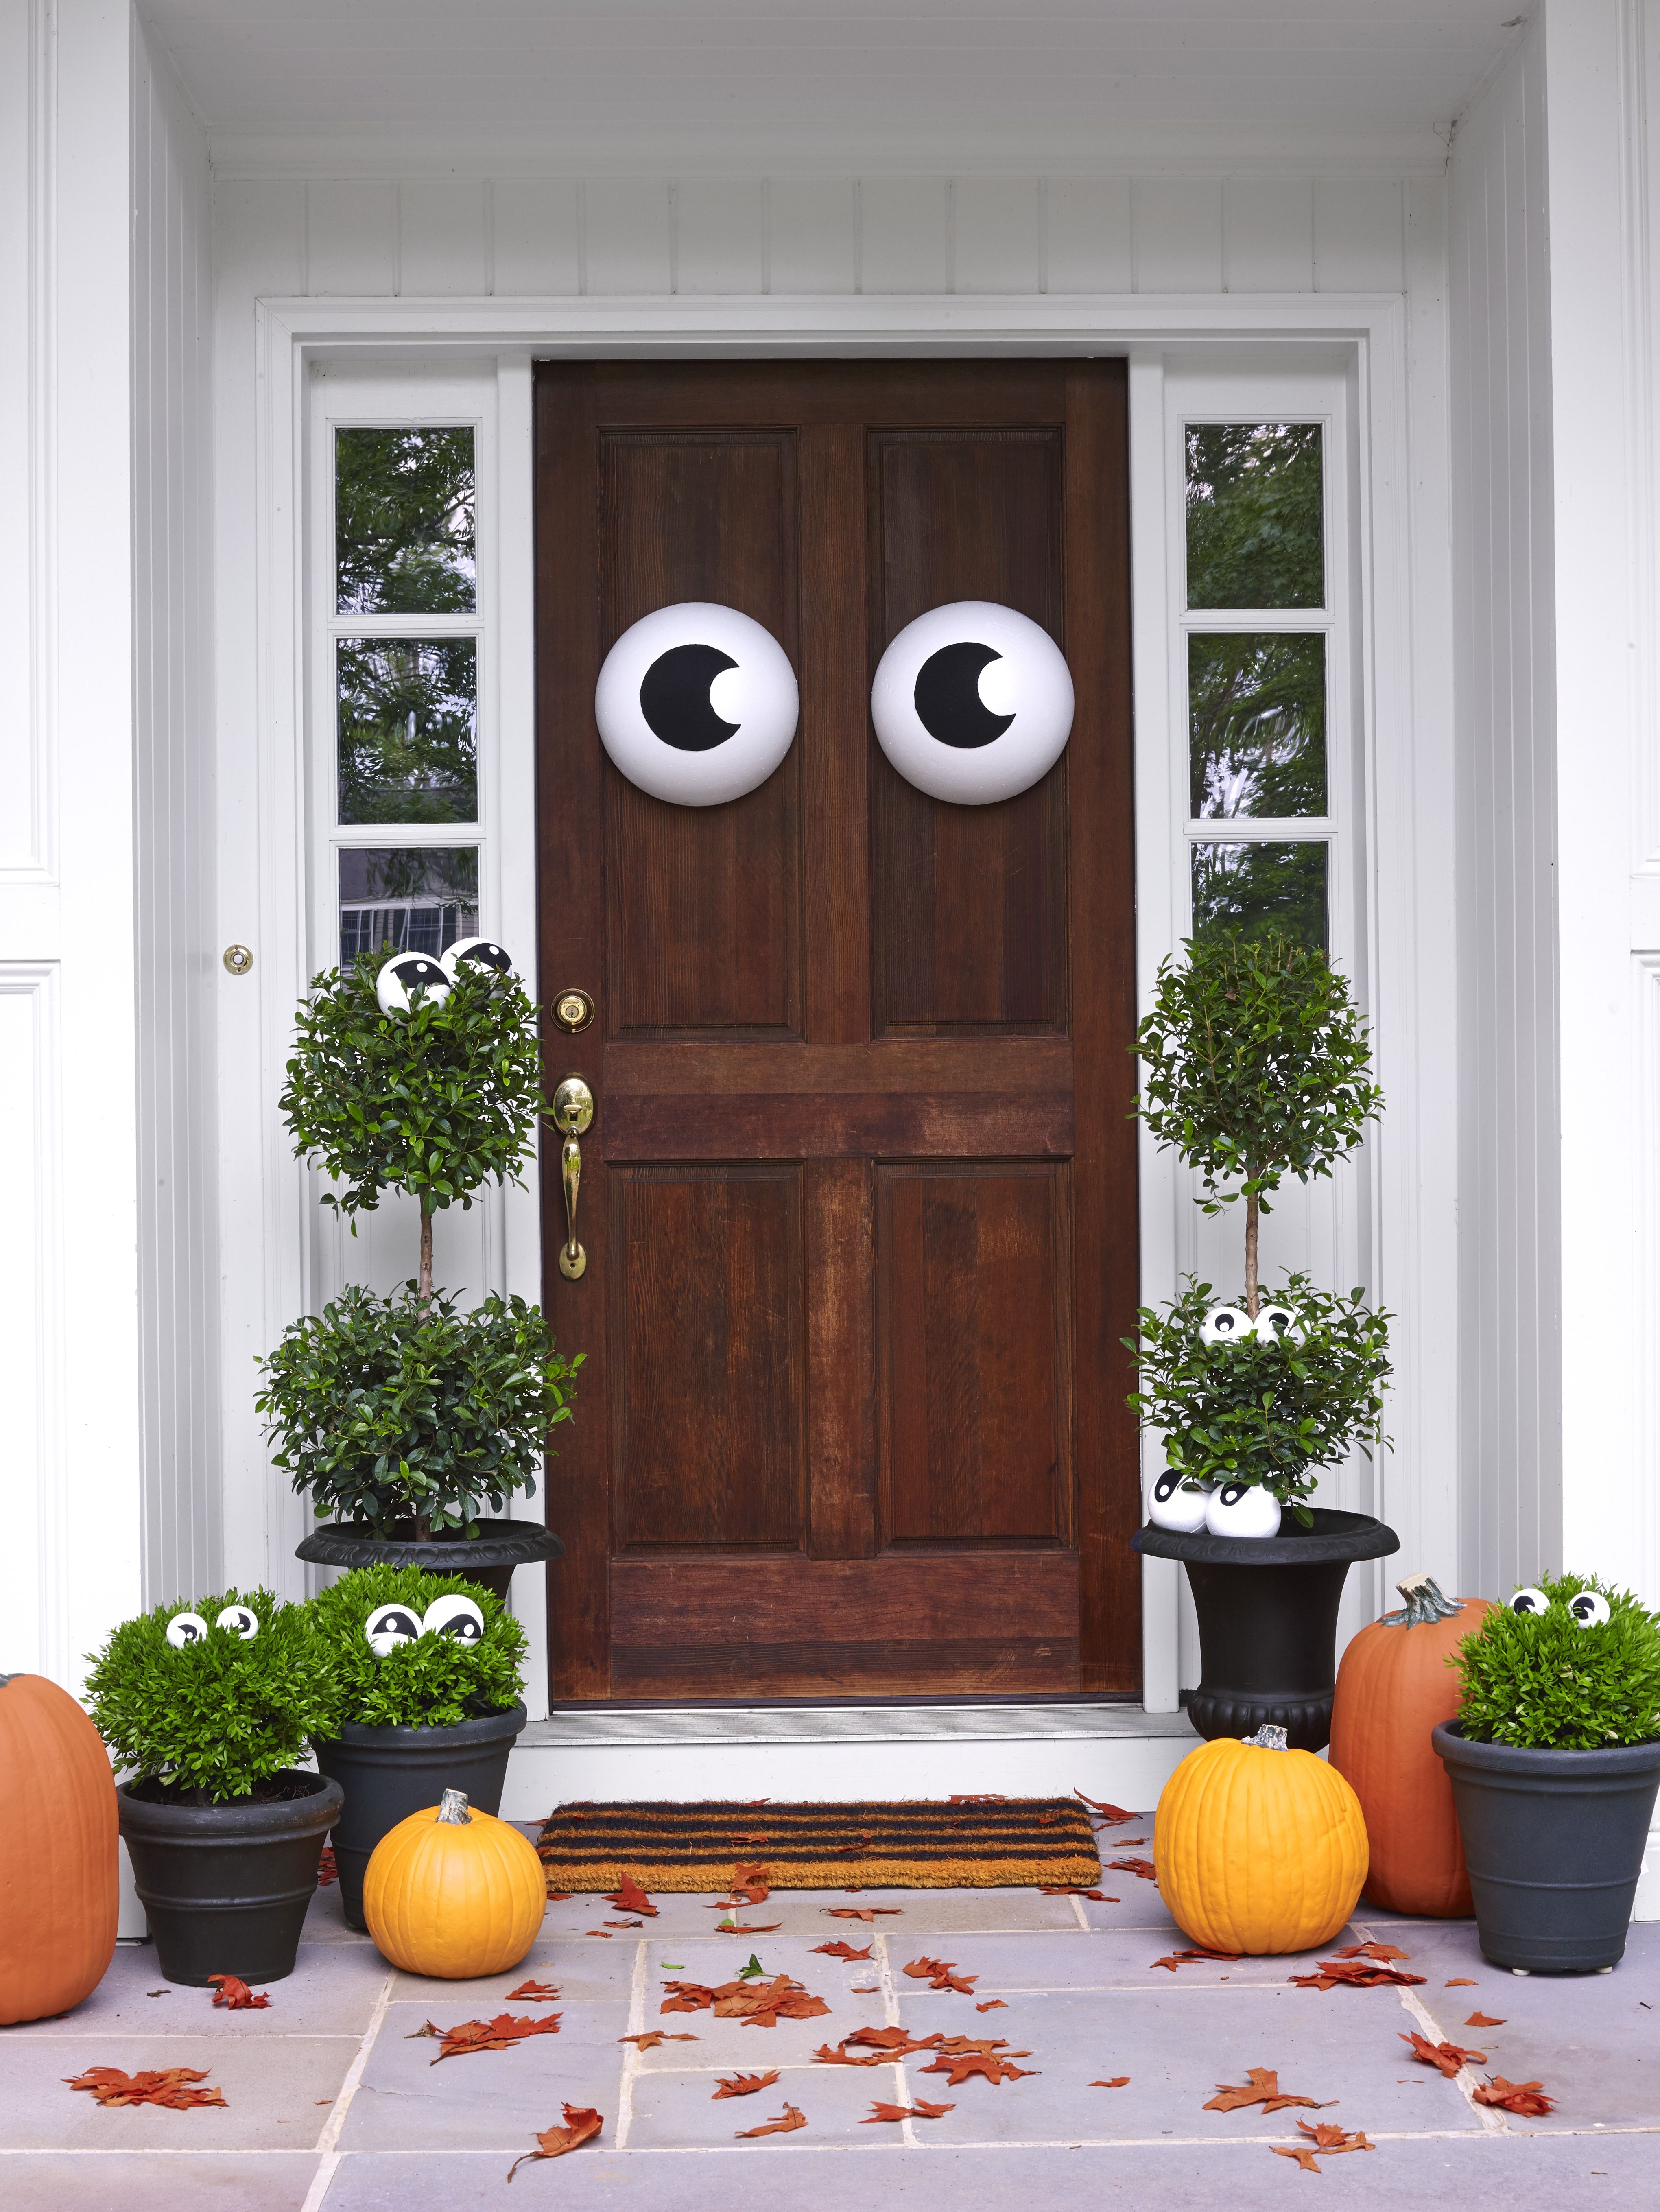 Your front door, potted plants and more will peer at passersby. Cut pupils out of adhesive-backed felt and position them on assorted Styrofoam balls or half-spheres (from $6.29 for 4; Amazon.com). Use double-stick tape to attach peepers to the door or skewers to stake them into greenery. - WomansDay.com